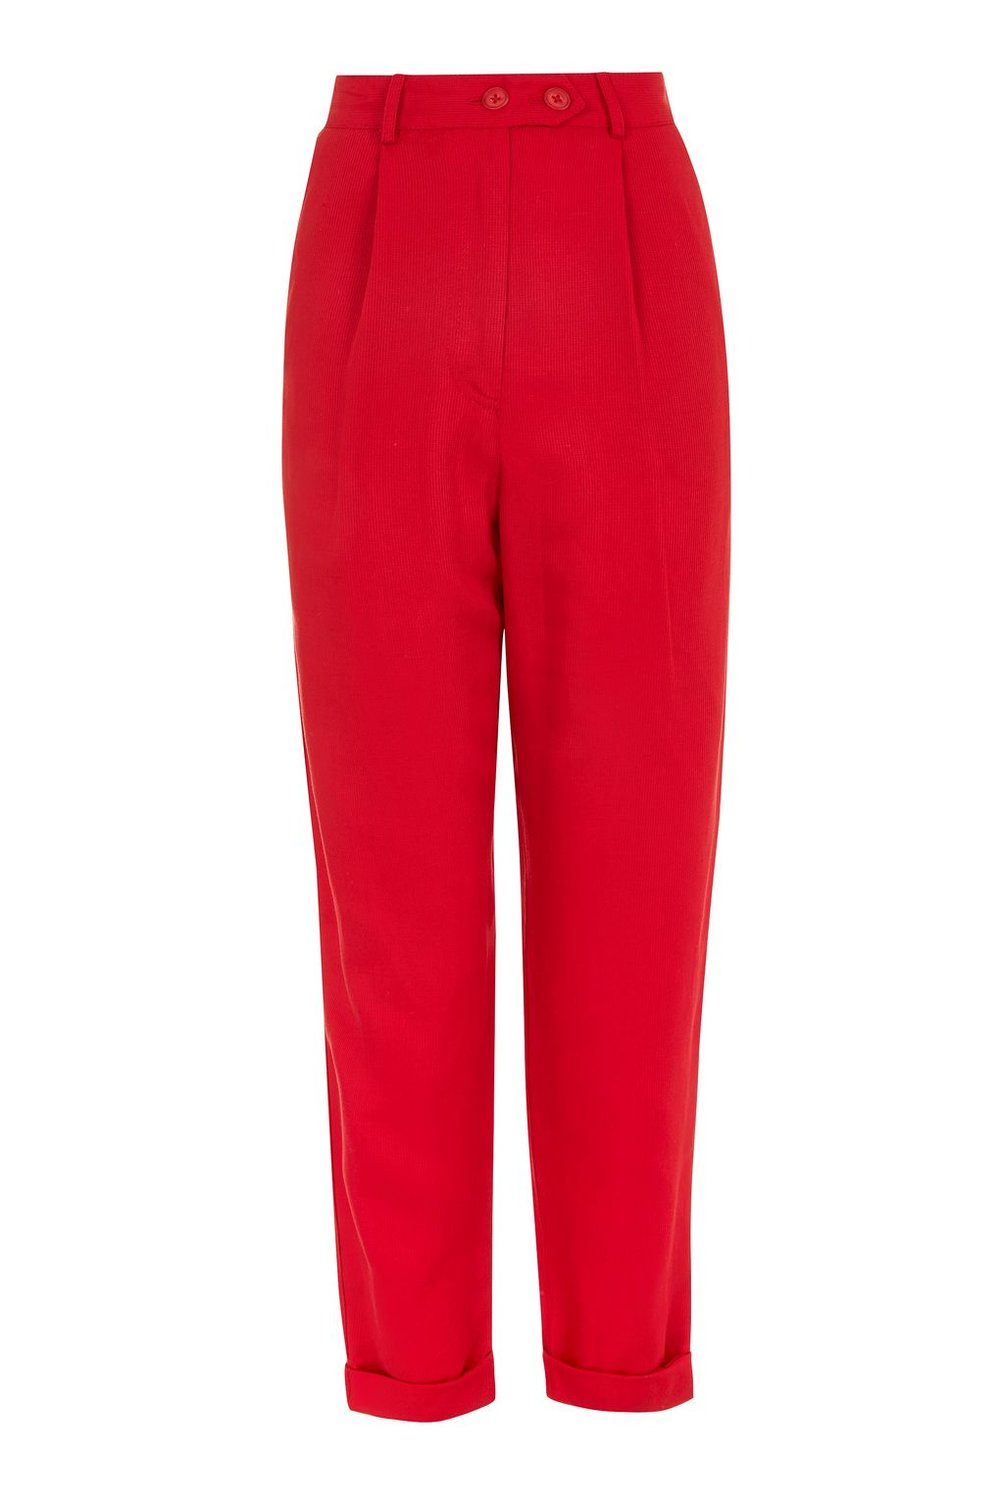 RED TROUSERS.jpg